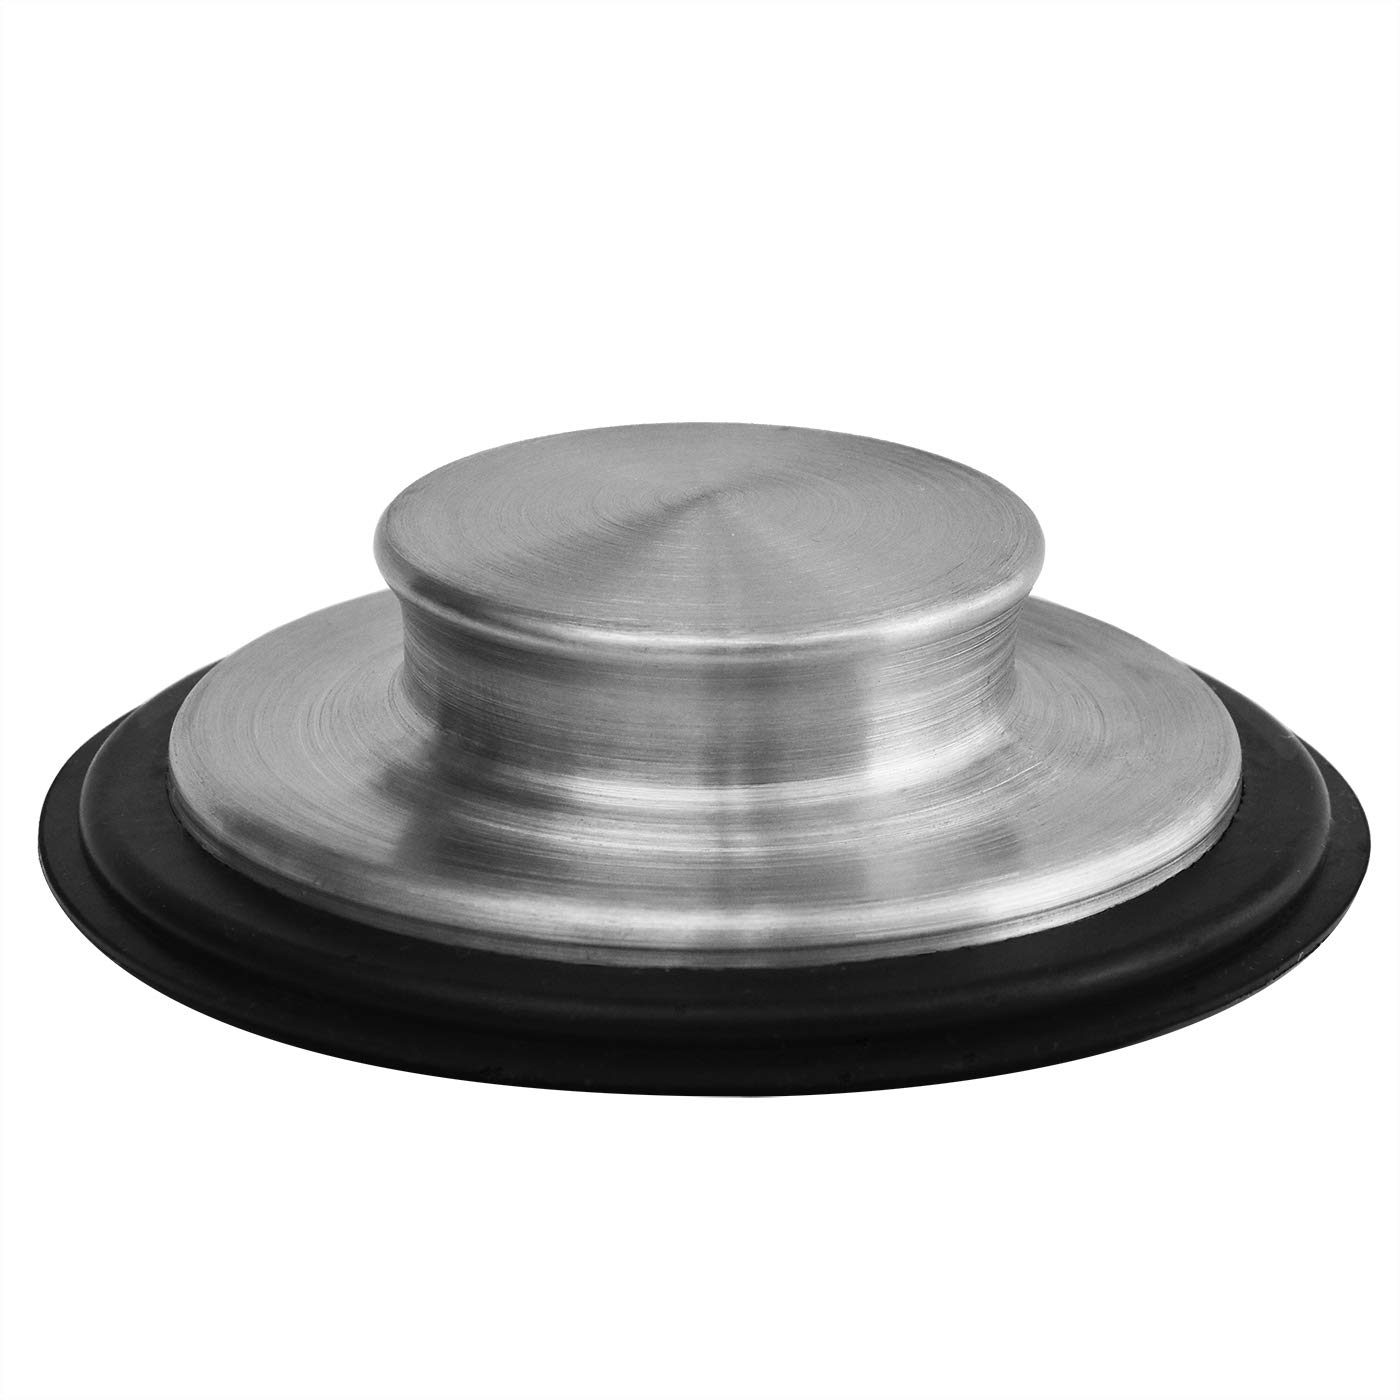 3 3/8 inch (8.57Cm) - Kitchen Sink Stopper Stainless Steel Garbage Disposal Plug Fits Standard Kitchen Drain size of 3 ½ Inch (3.5 Inch) Diameter